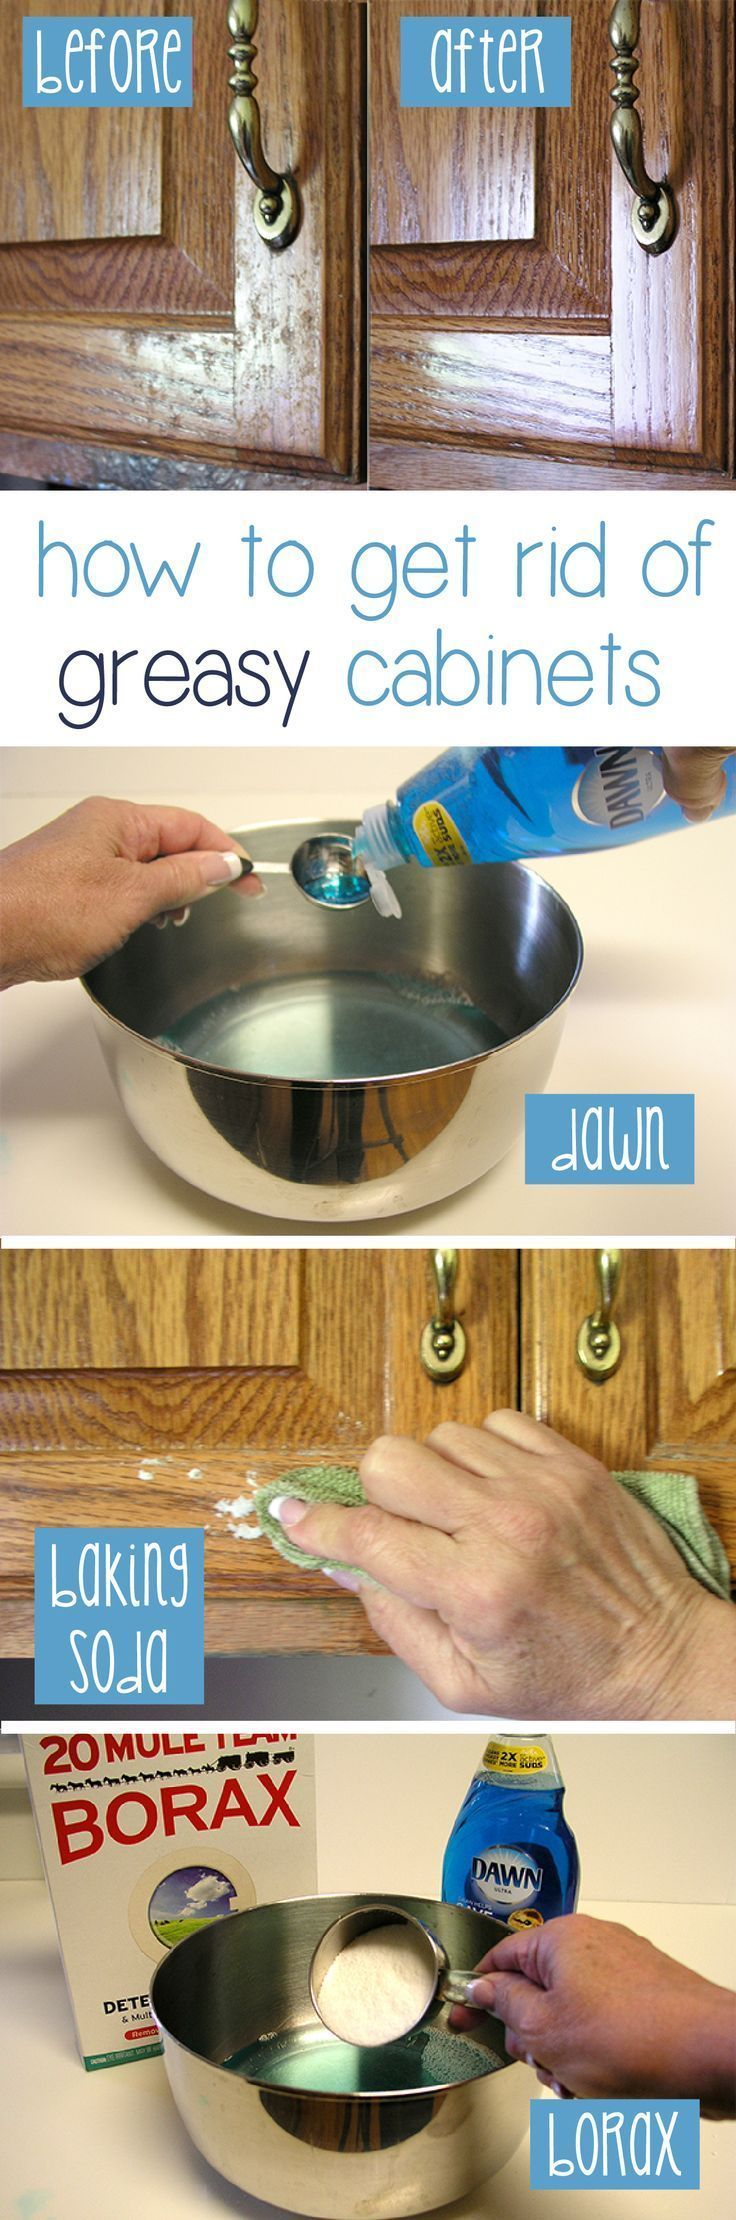 How To Clean Grease From Kitchen Cabinet Doors Kitchens Kitchen - Clean kitchen cabinets wood